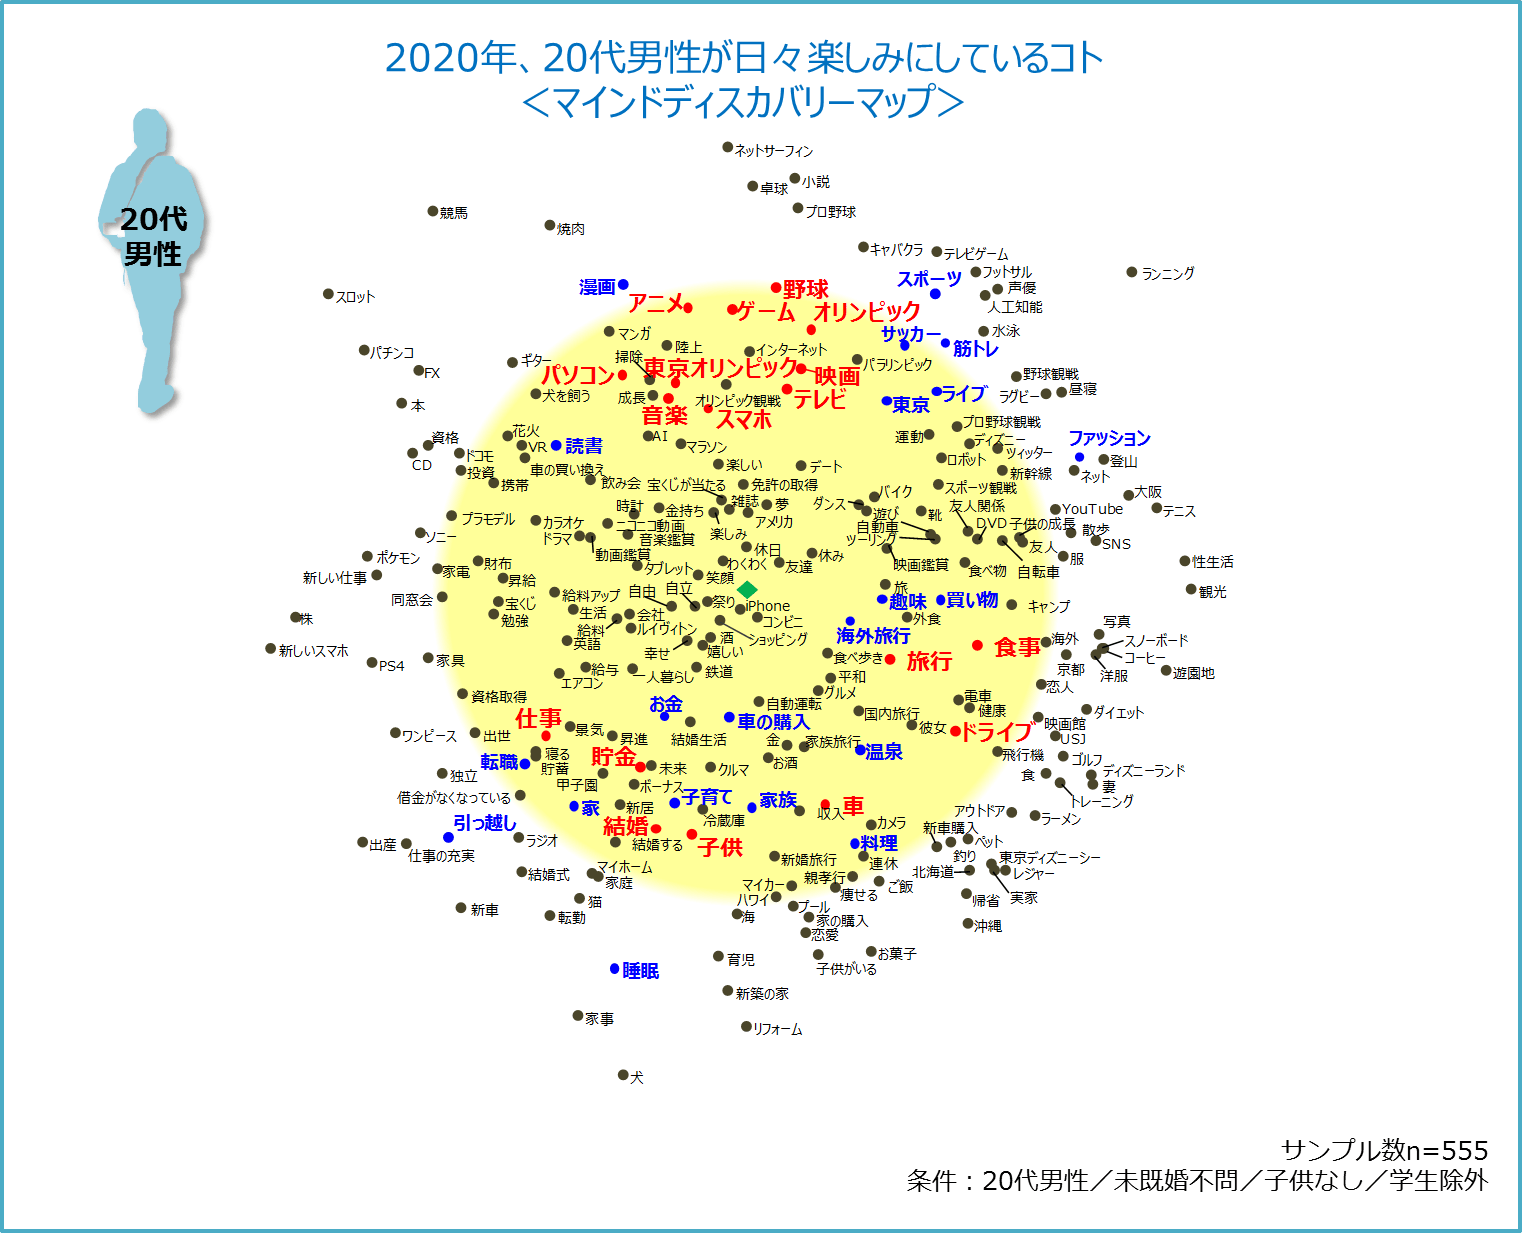 2020_20sM_Mind_Discovery_Map_03.png